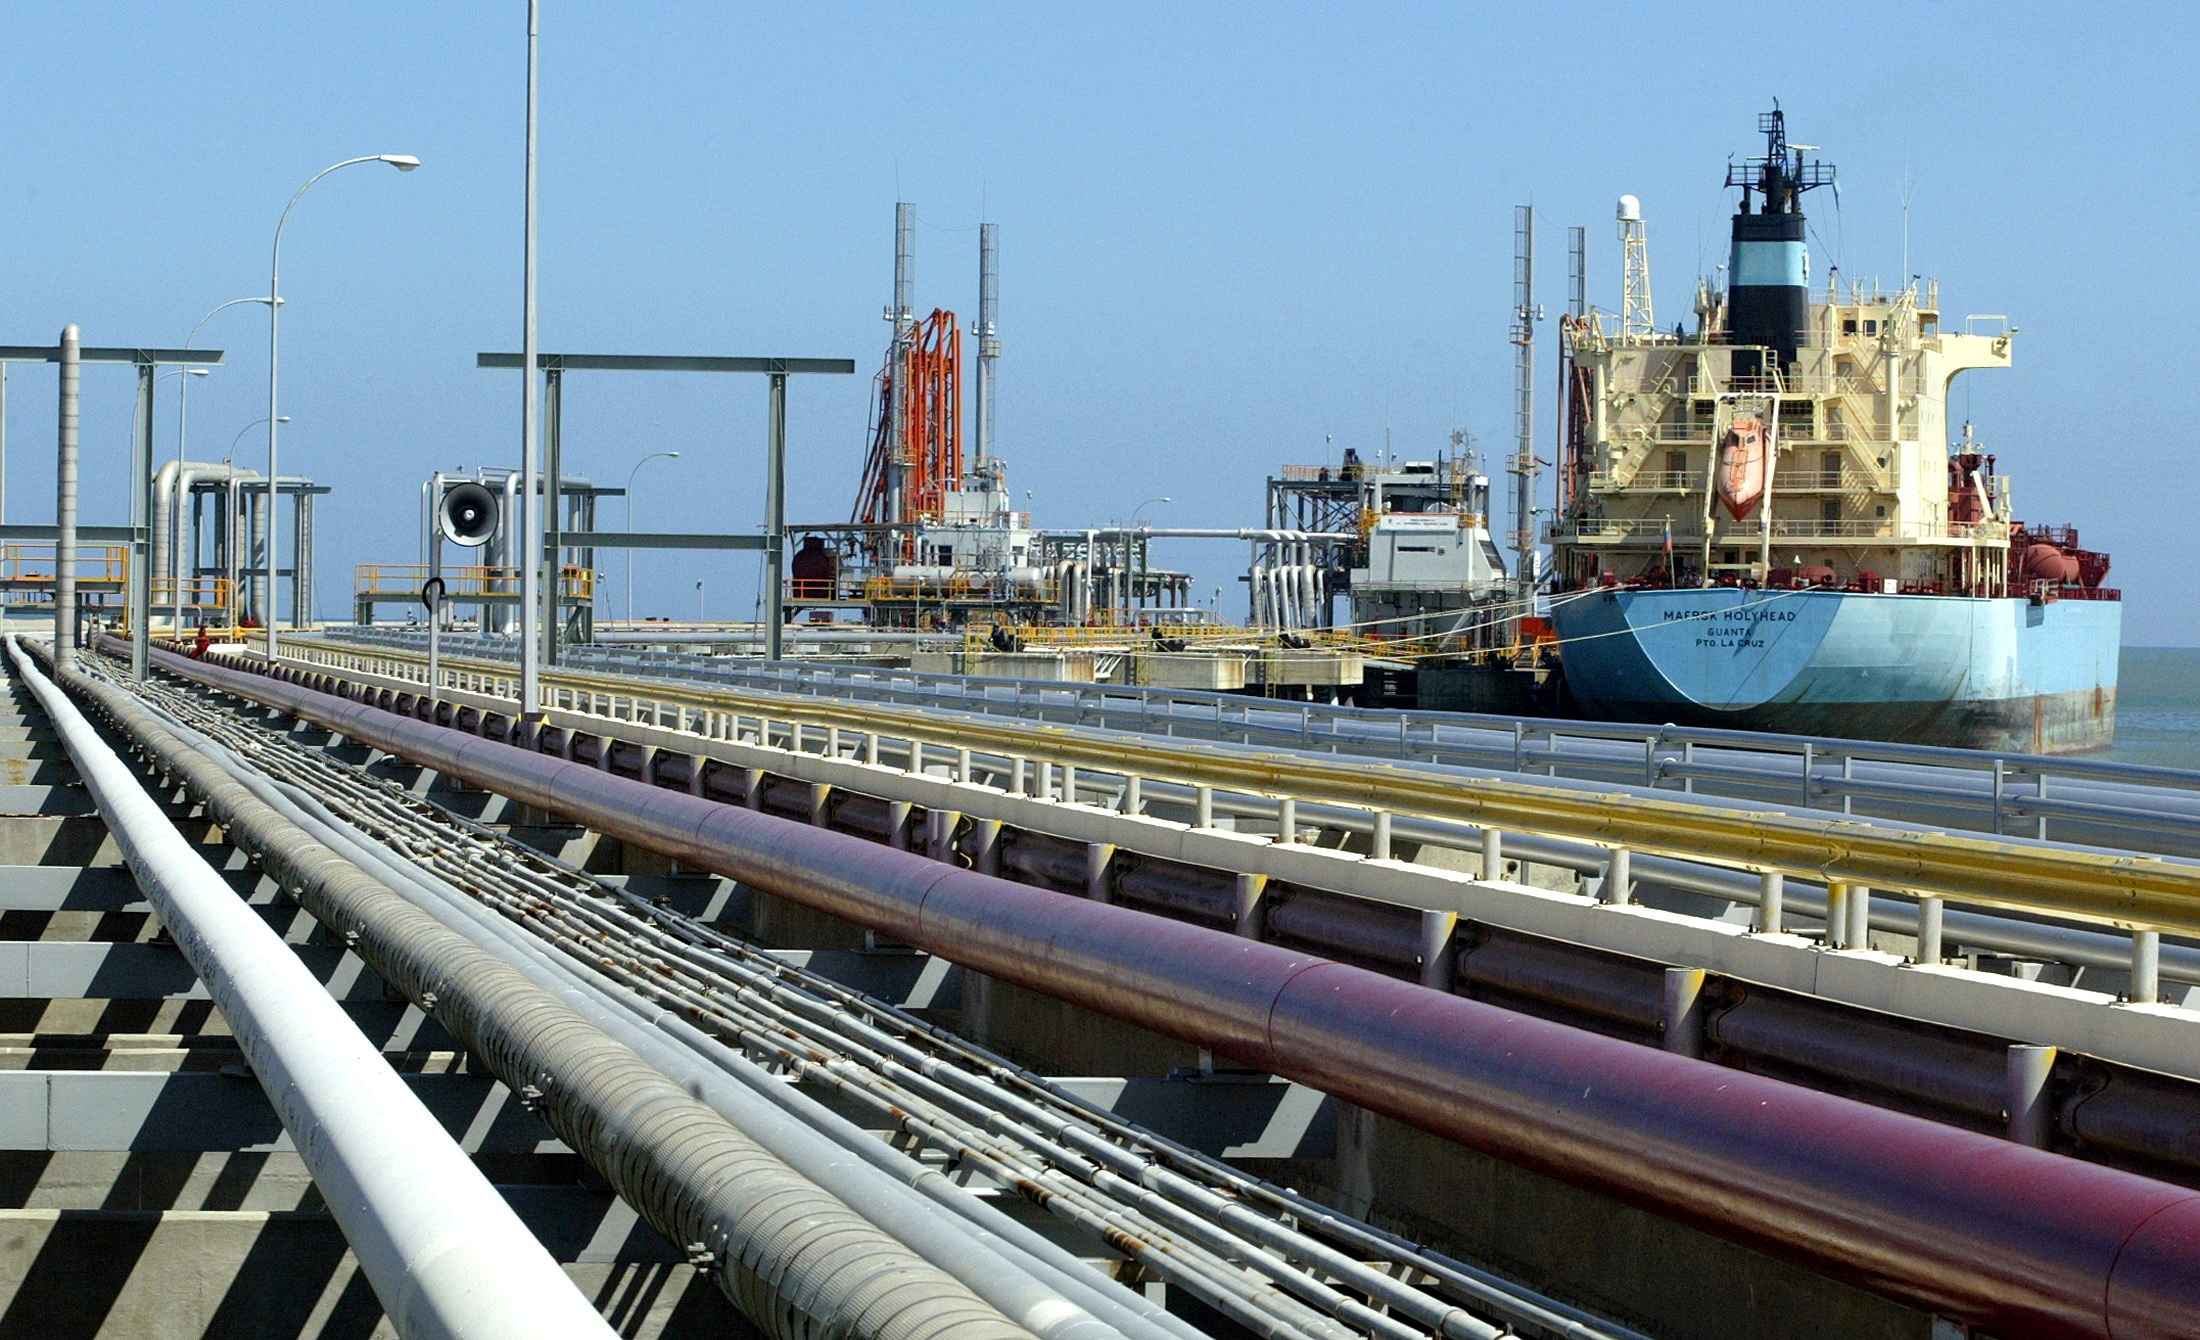 An oil tanker is seen at Jose refinery cargo terminal in Venezuela in this undated file photo/File Photo